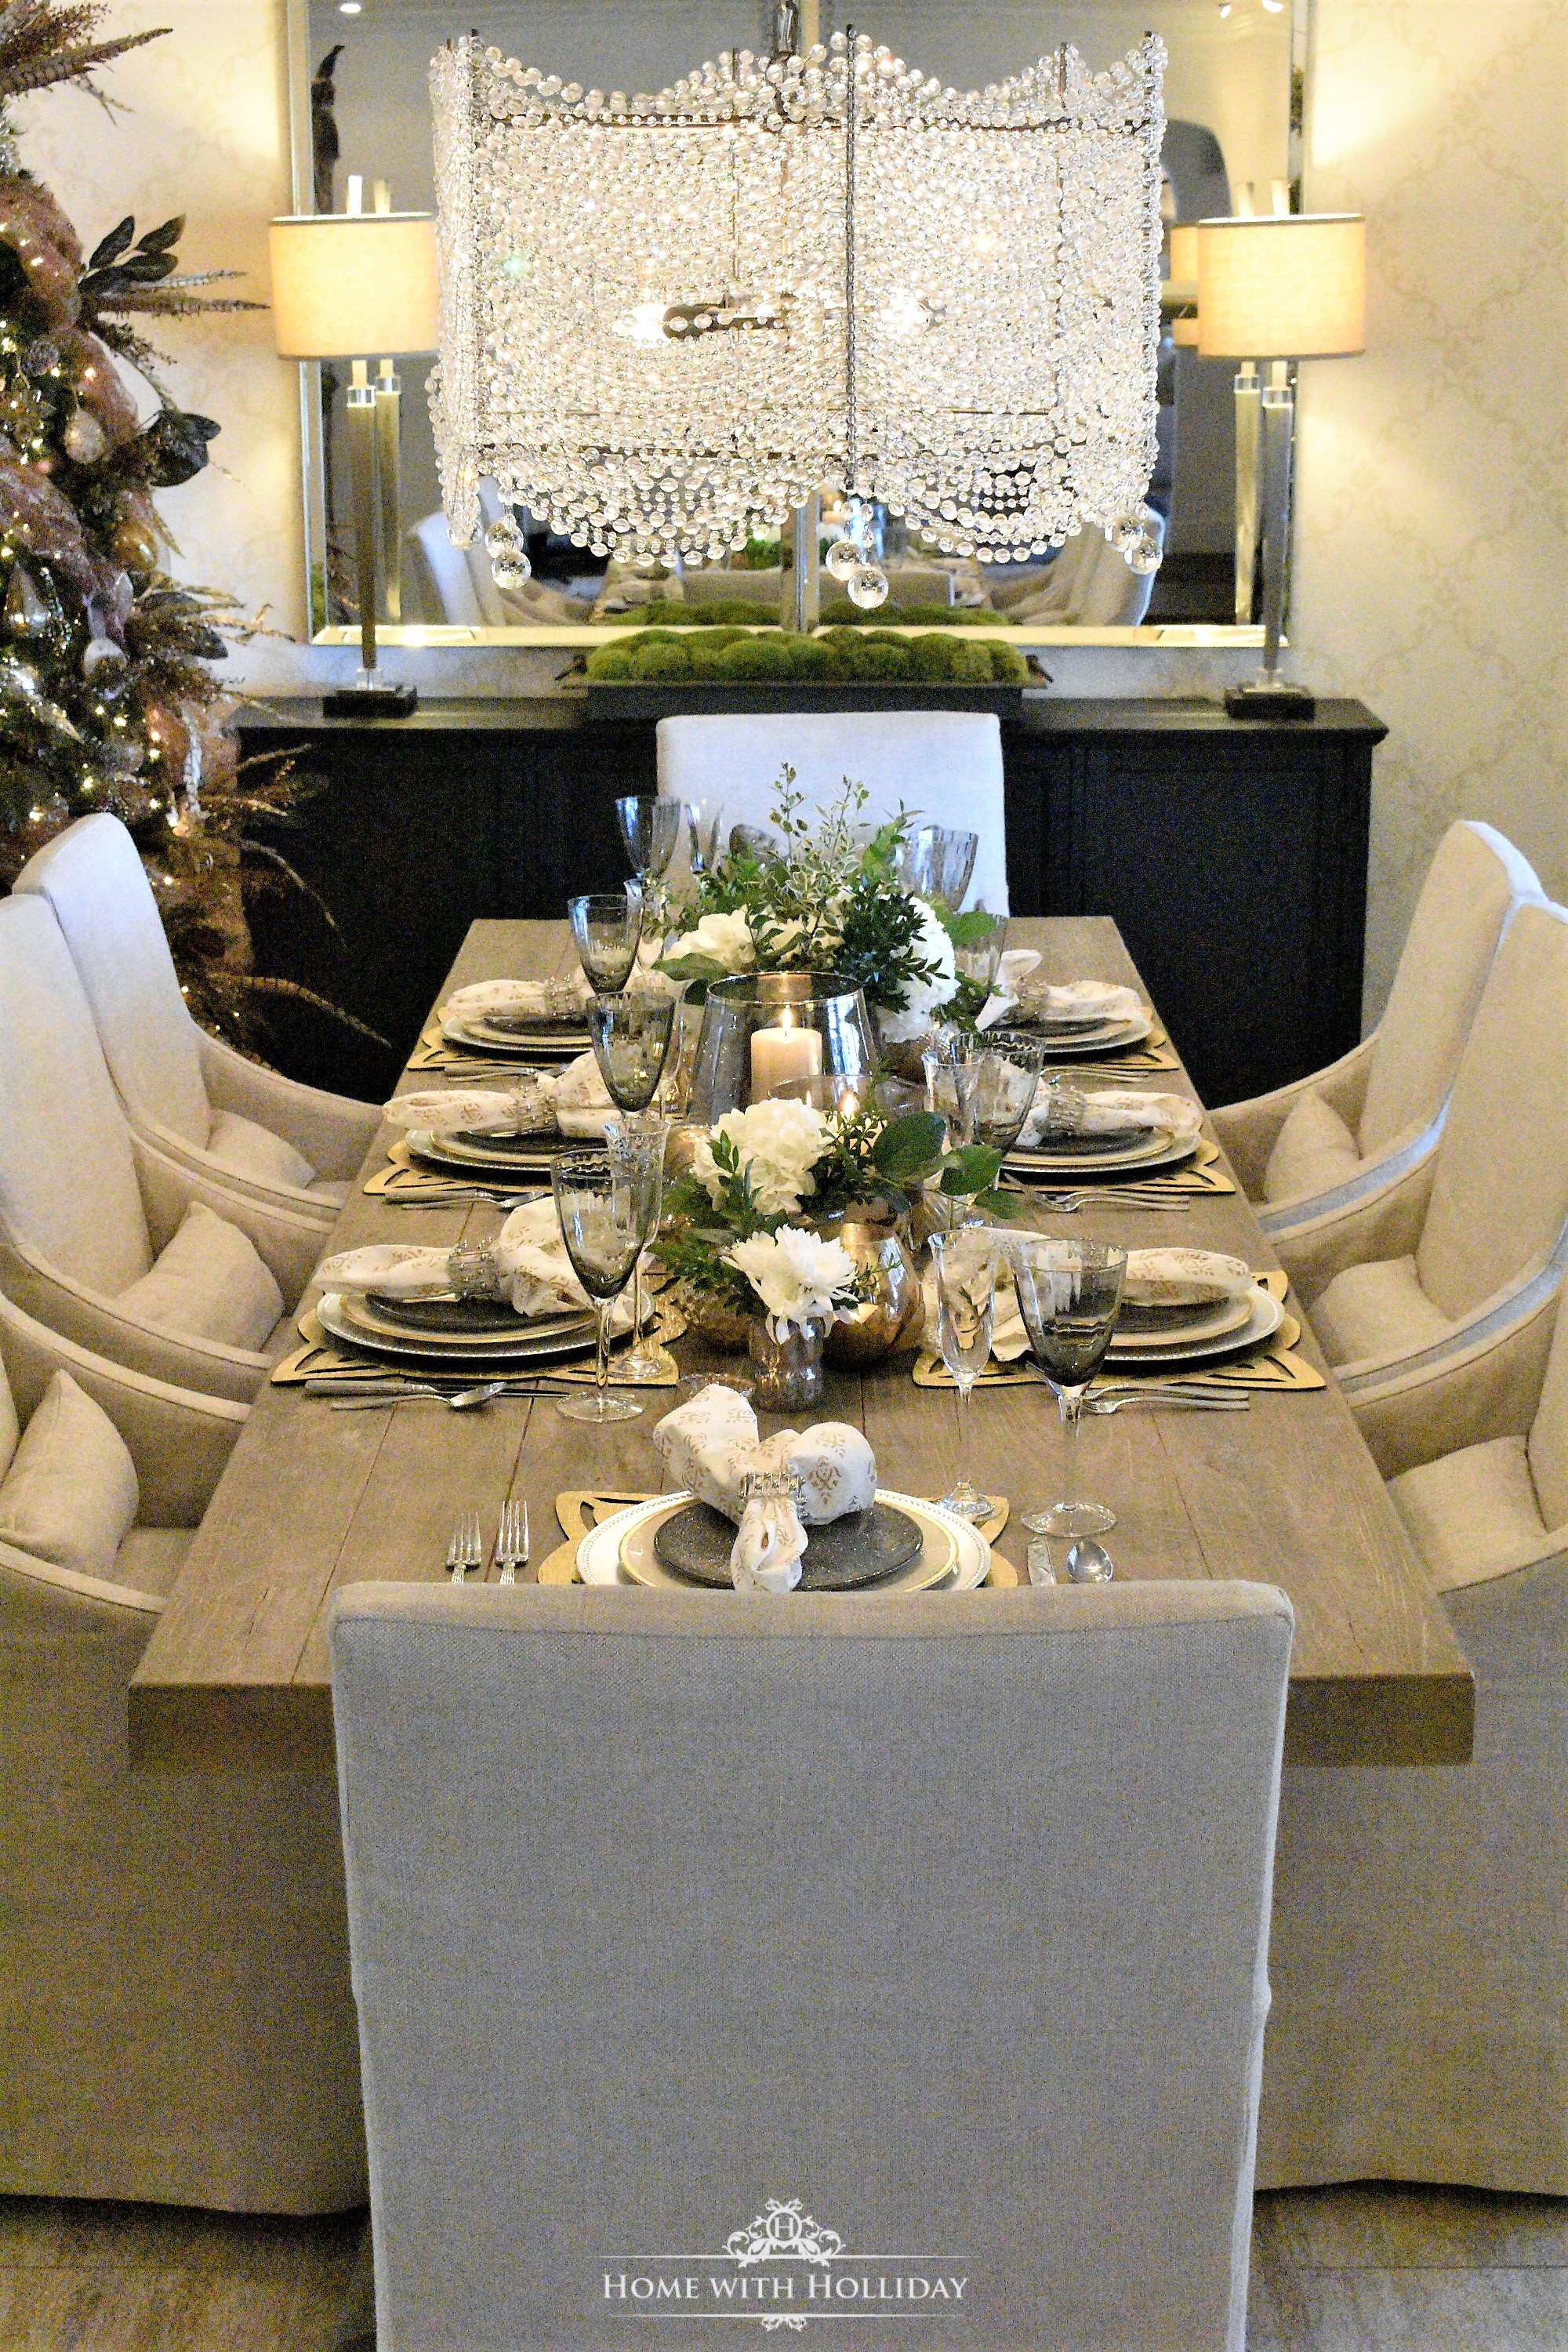 Gold and Silver Table Setting for New Year's Eve or Christmas